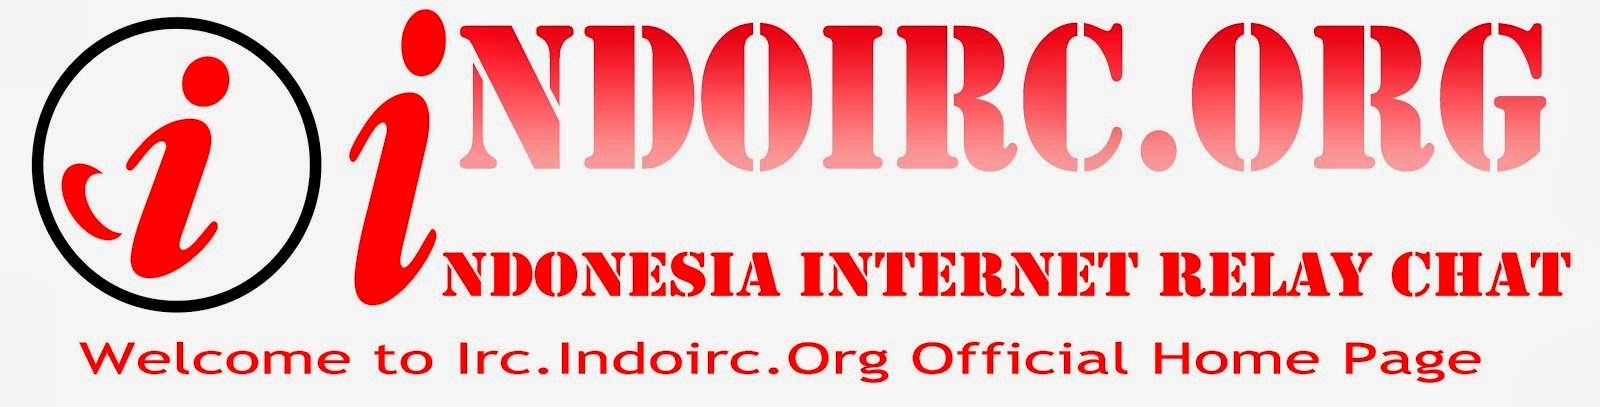 Indonesia Internet Relay Chat: Maret 2013